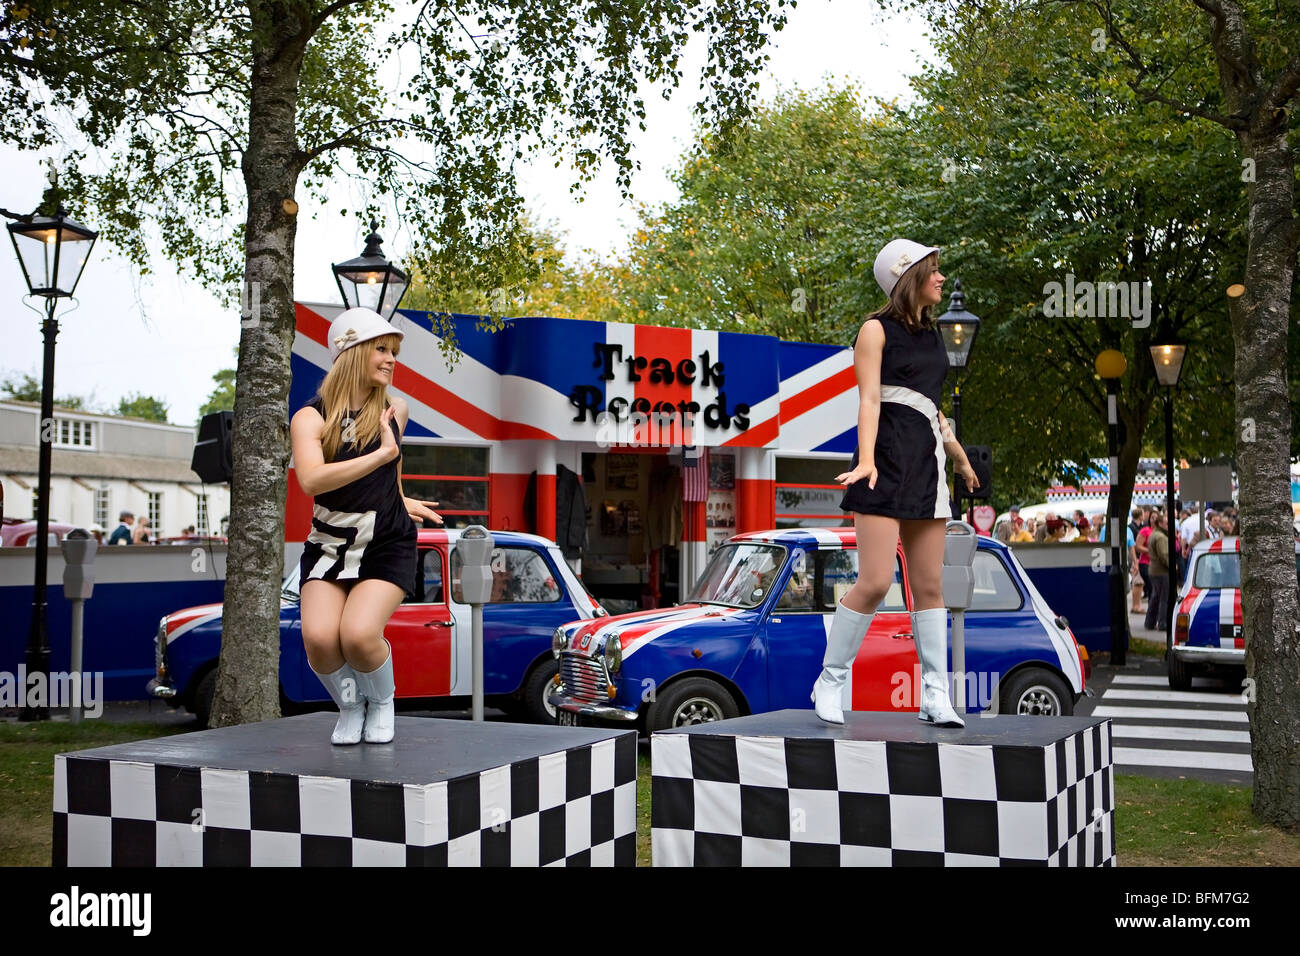 Sixties dancing girls at Goodwood Revival, Chichester, West Sussex, England - Stock Image